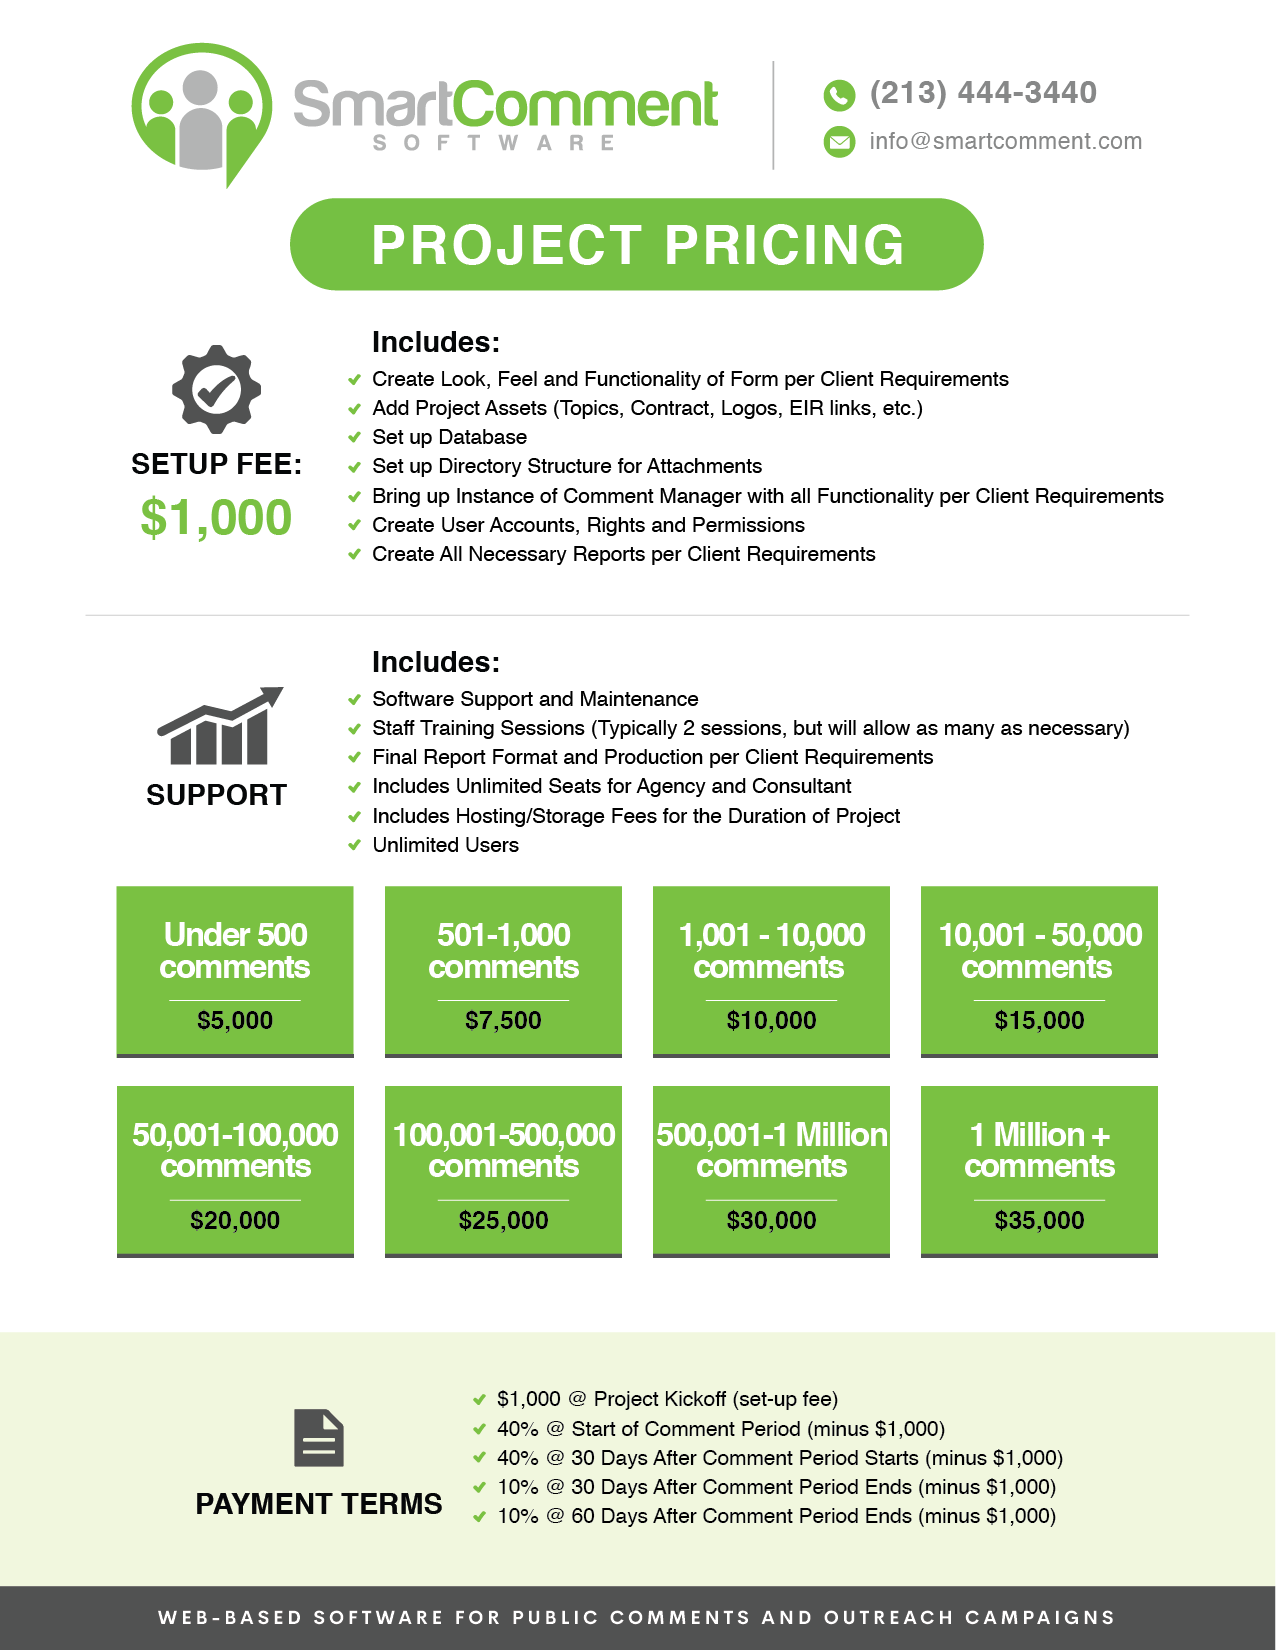 Hip Redesign of Price Matrix for Environmental Technology Company